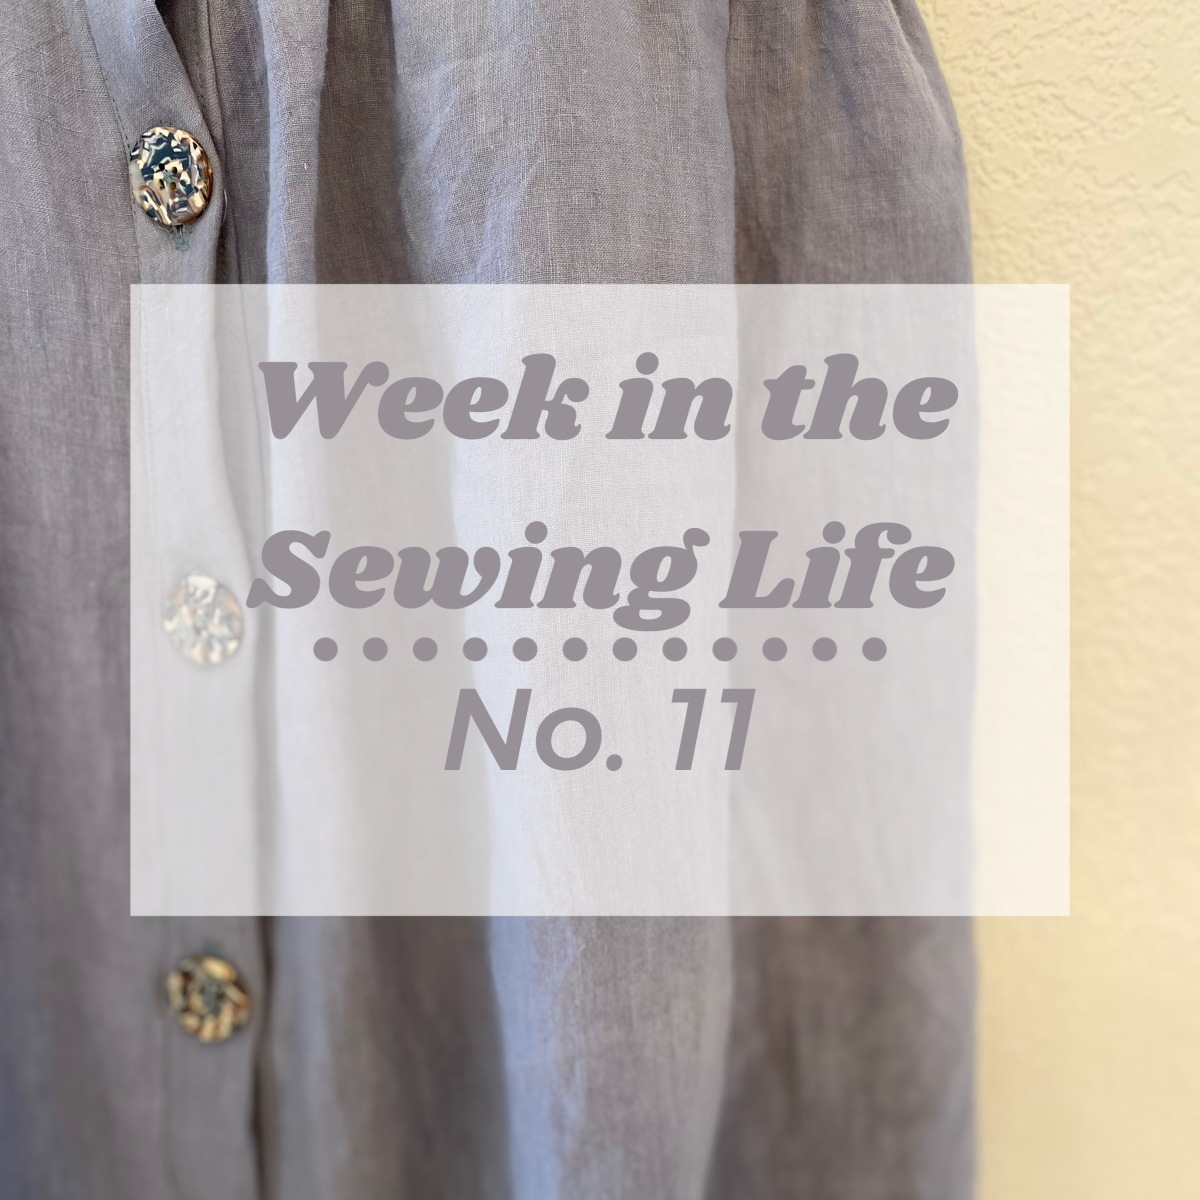 Week in the Sewing Life No.11